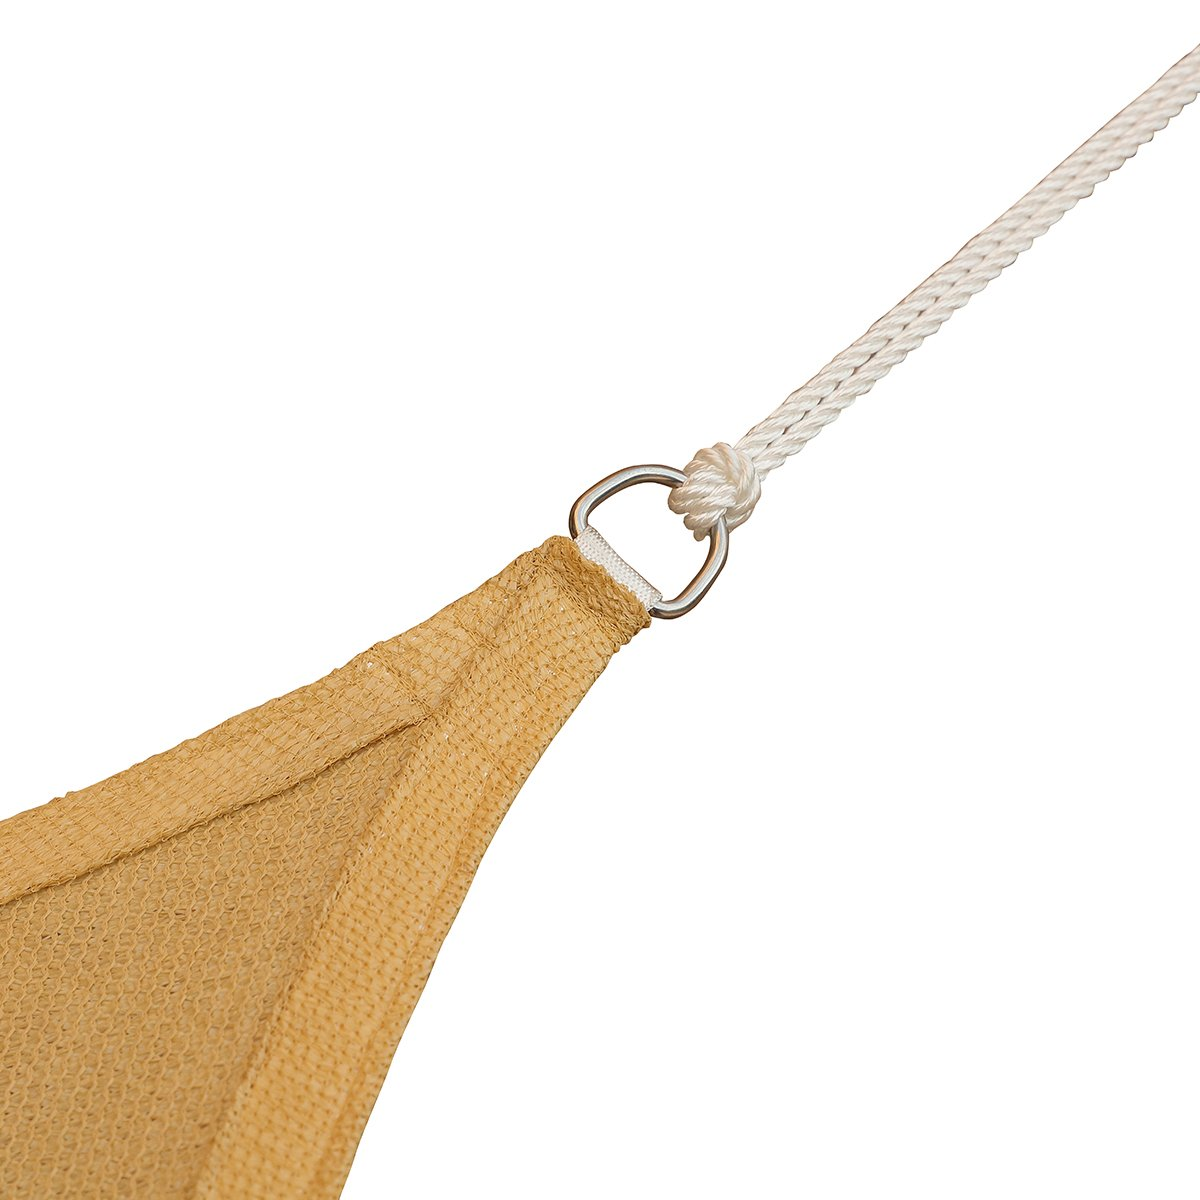 COCONUT Sun Shade Sail Heavy Duty Outdoor UV Block 100 Polyester White Long Rope 1 4 Inch 50 Feet